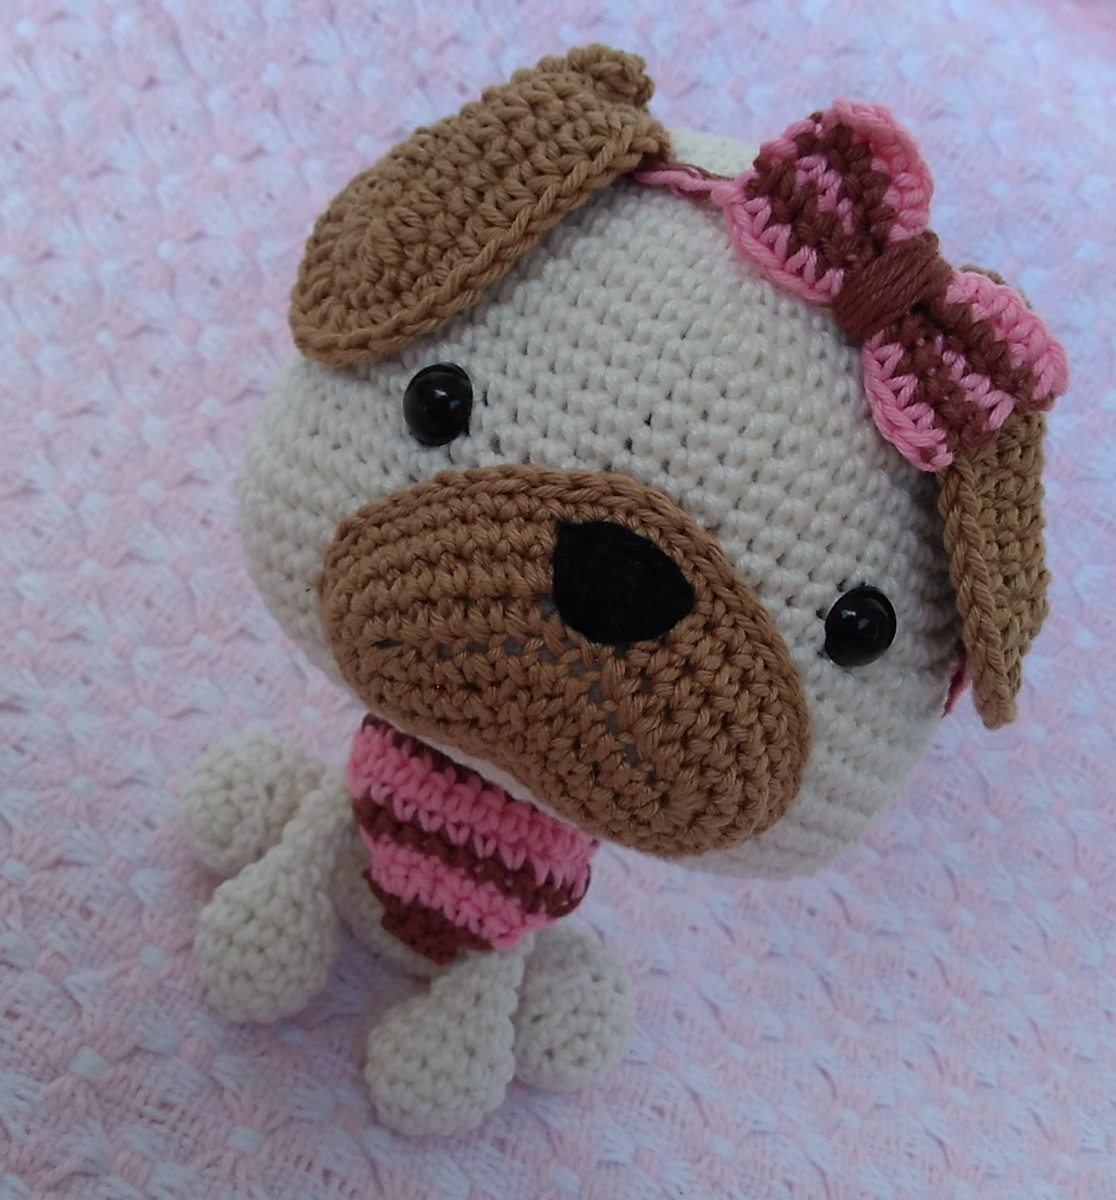 Tiny Potato Pug amigurumi free crochet - Amigu World | 1200x1116